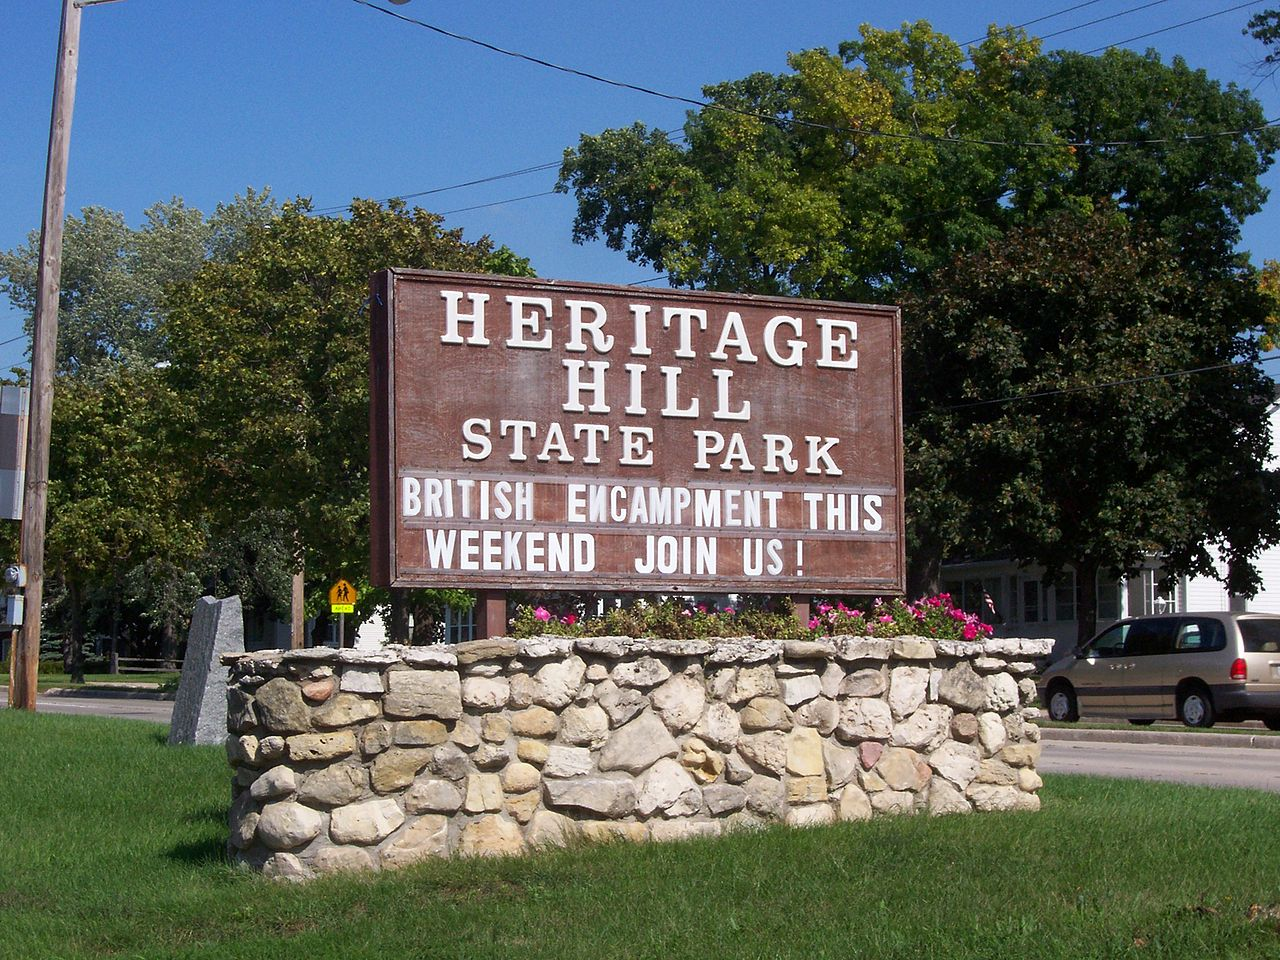 The park's sign at the entrance